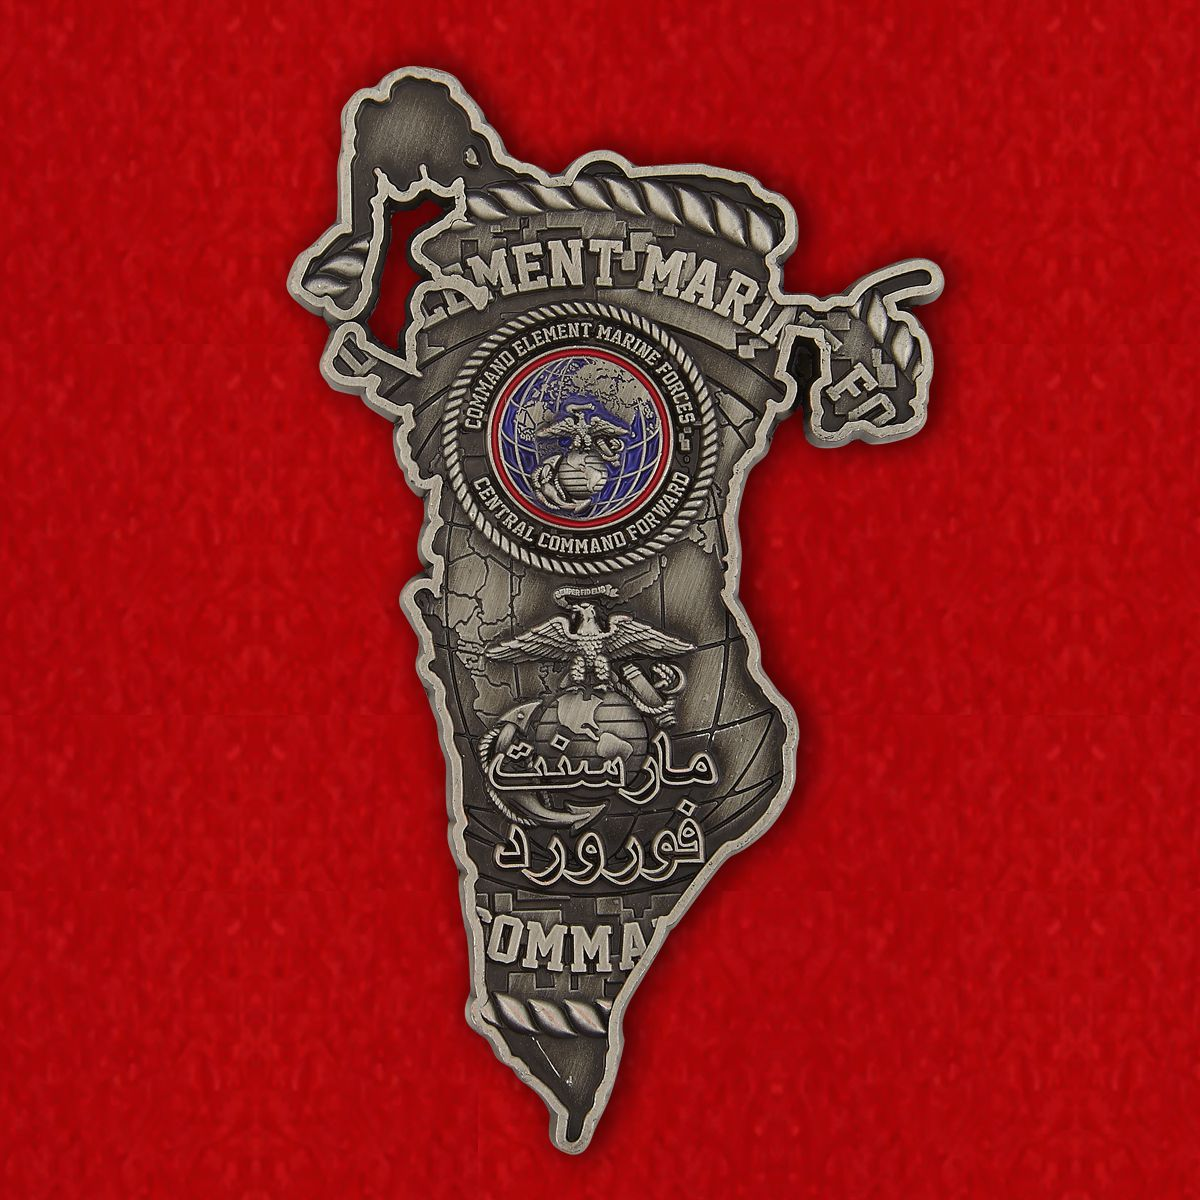 Operational Control Division Command United States Marine Corps in Bahrain Challenge Coin